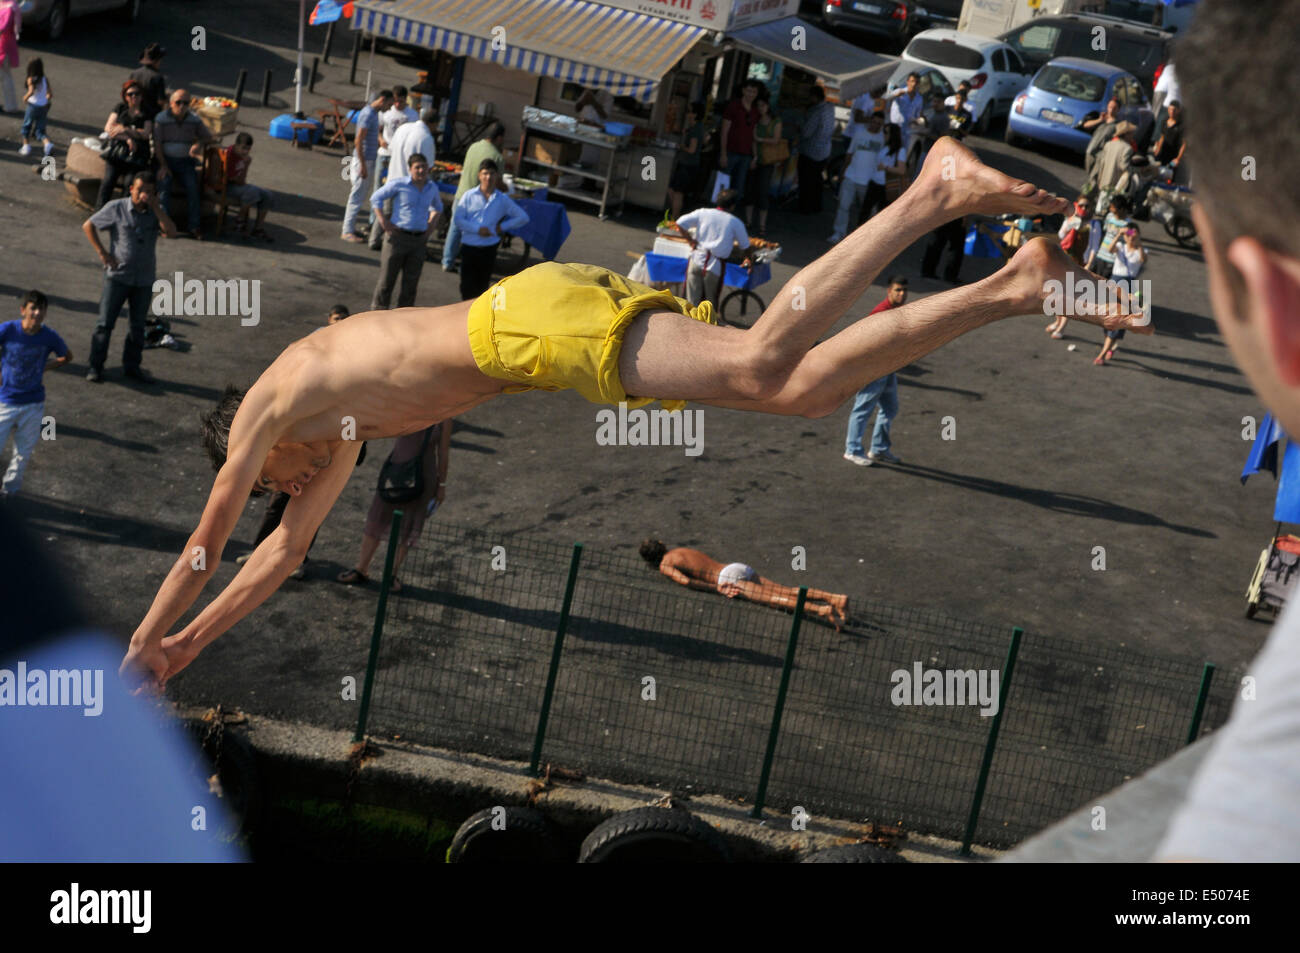 A Turkish youth dives from the handrail of Galata bridge into the waters of the Golden Horn several meters below - Stock Image